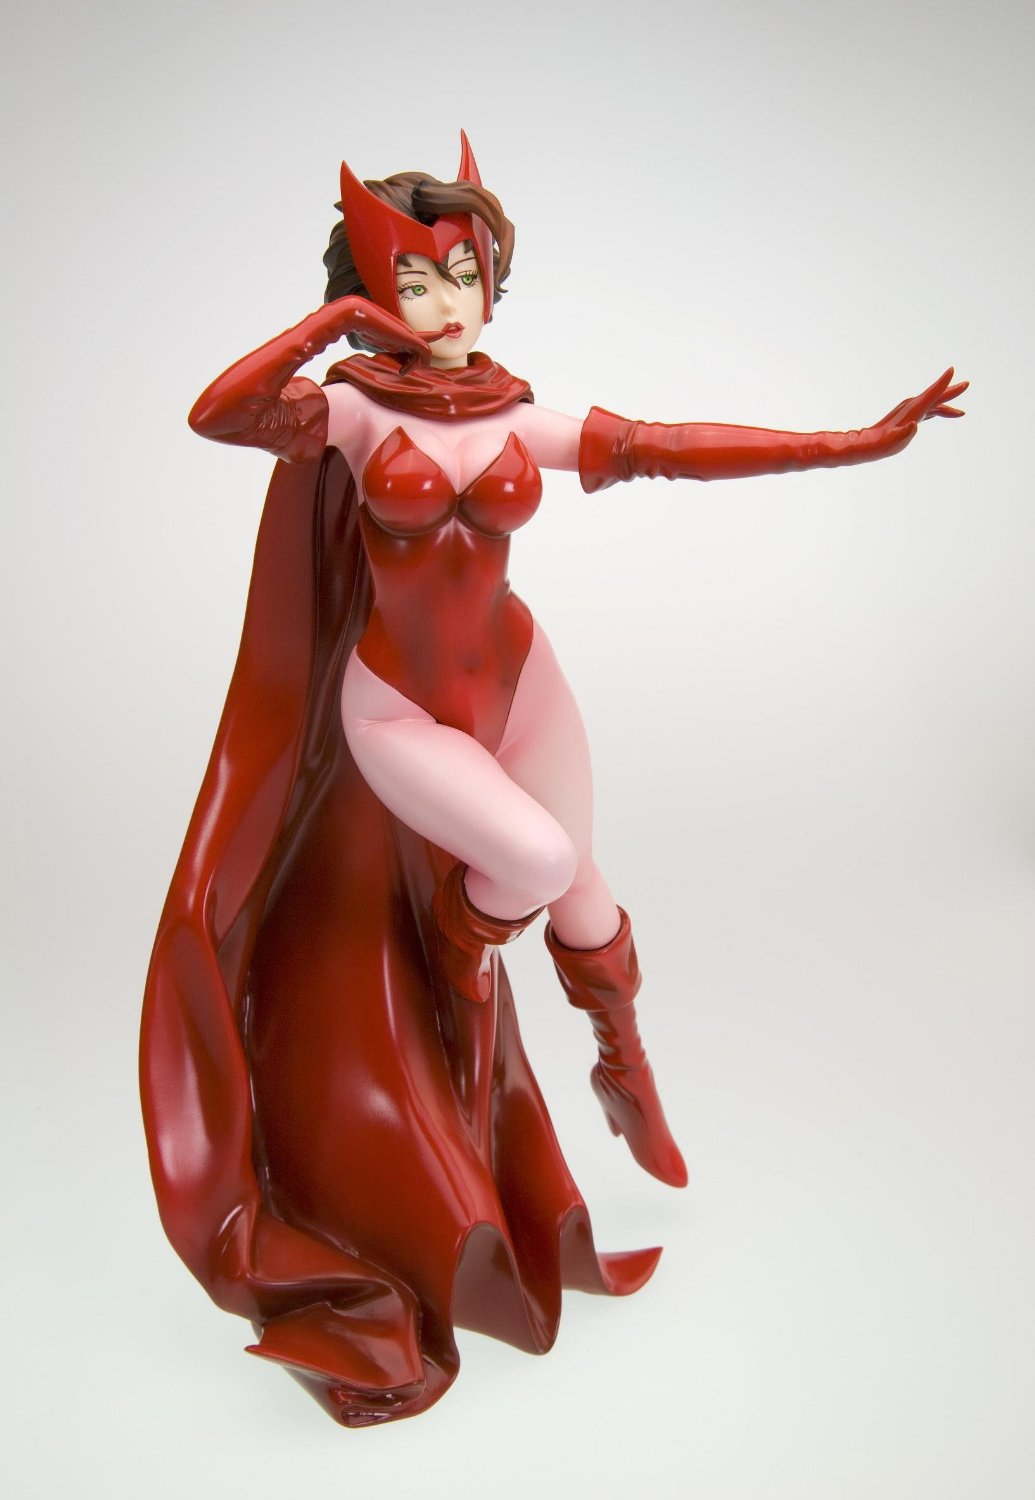 marvel-comics-scarlet-witch-bishoujo-statue-3